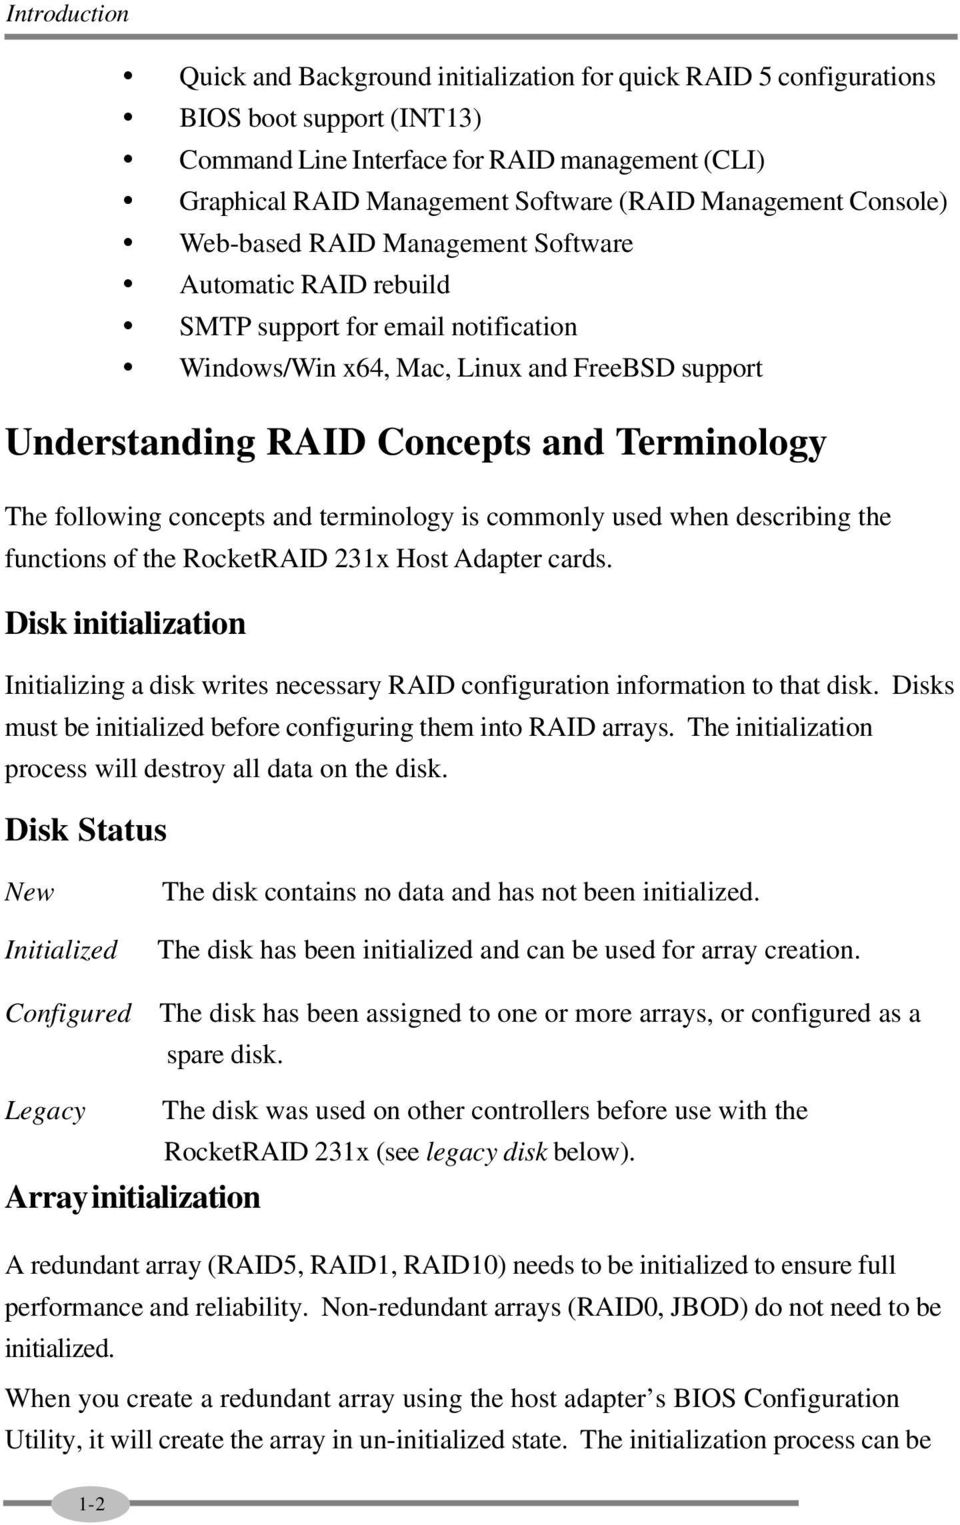 Terminology The following concepts and terminology is commonly used when describing the functions of the RocketRAID 231x Host Adapter cards.